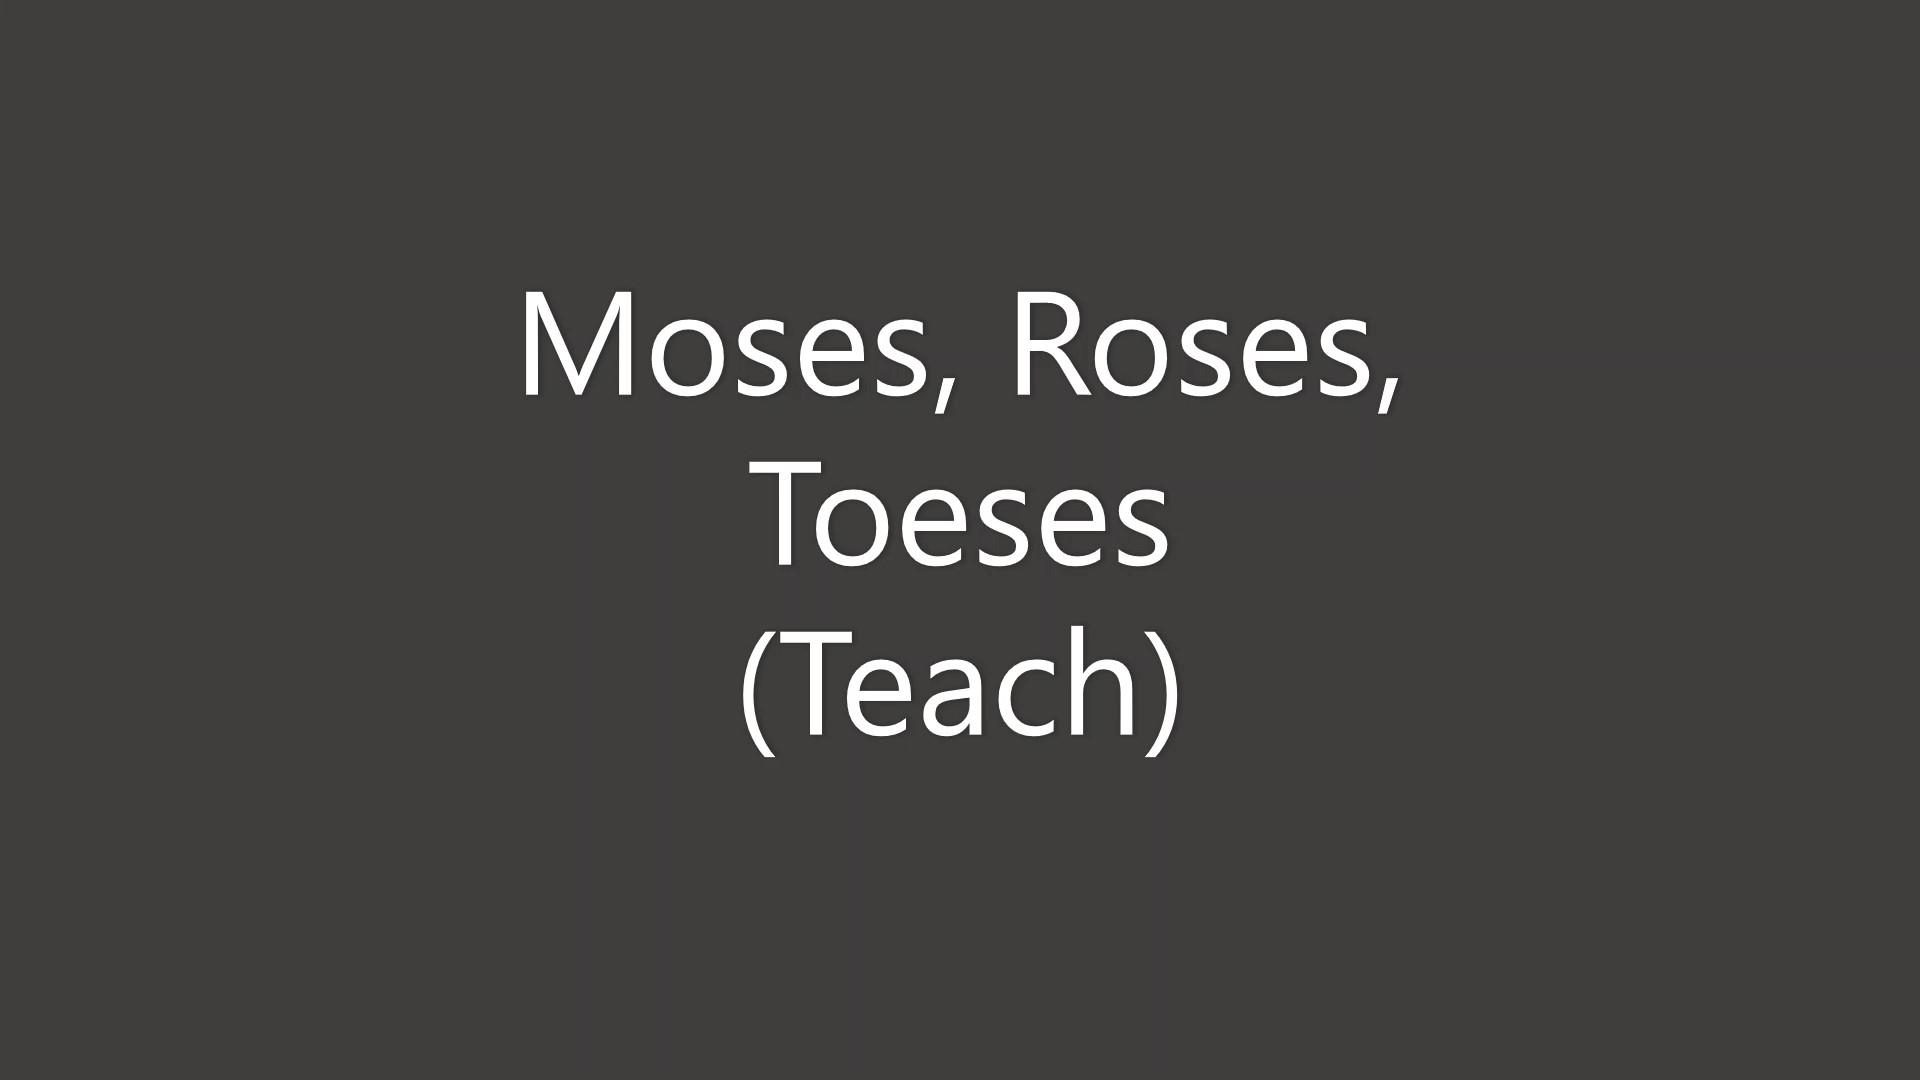 Moses, Roses, Toeses - Teach